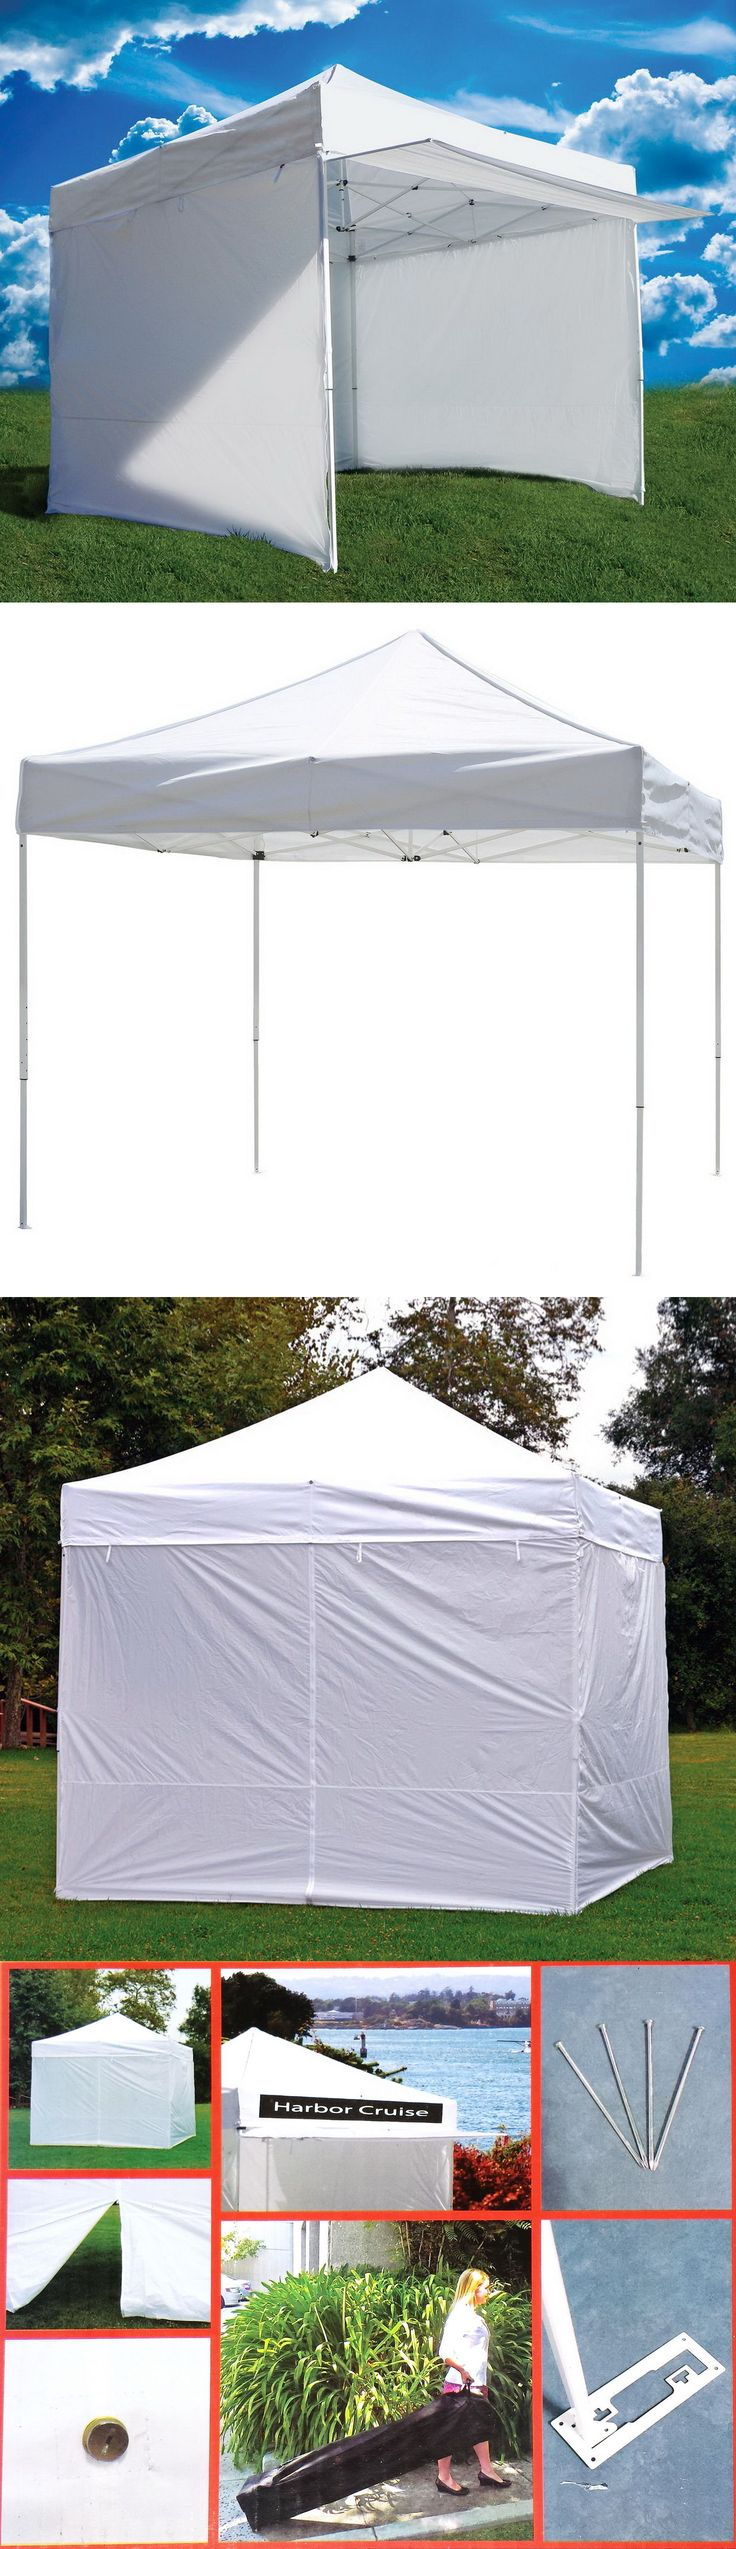 Awnings and Canopies 180992: New 10 X 10 Commercial Canopy Shelter Pop Up Fair Tent Booth Z-Shade + 4 Walls -> BUY IT NOW ONLY: $218.89 on eBay!